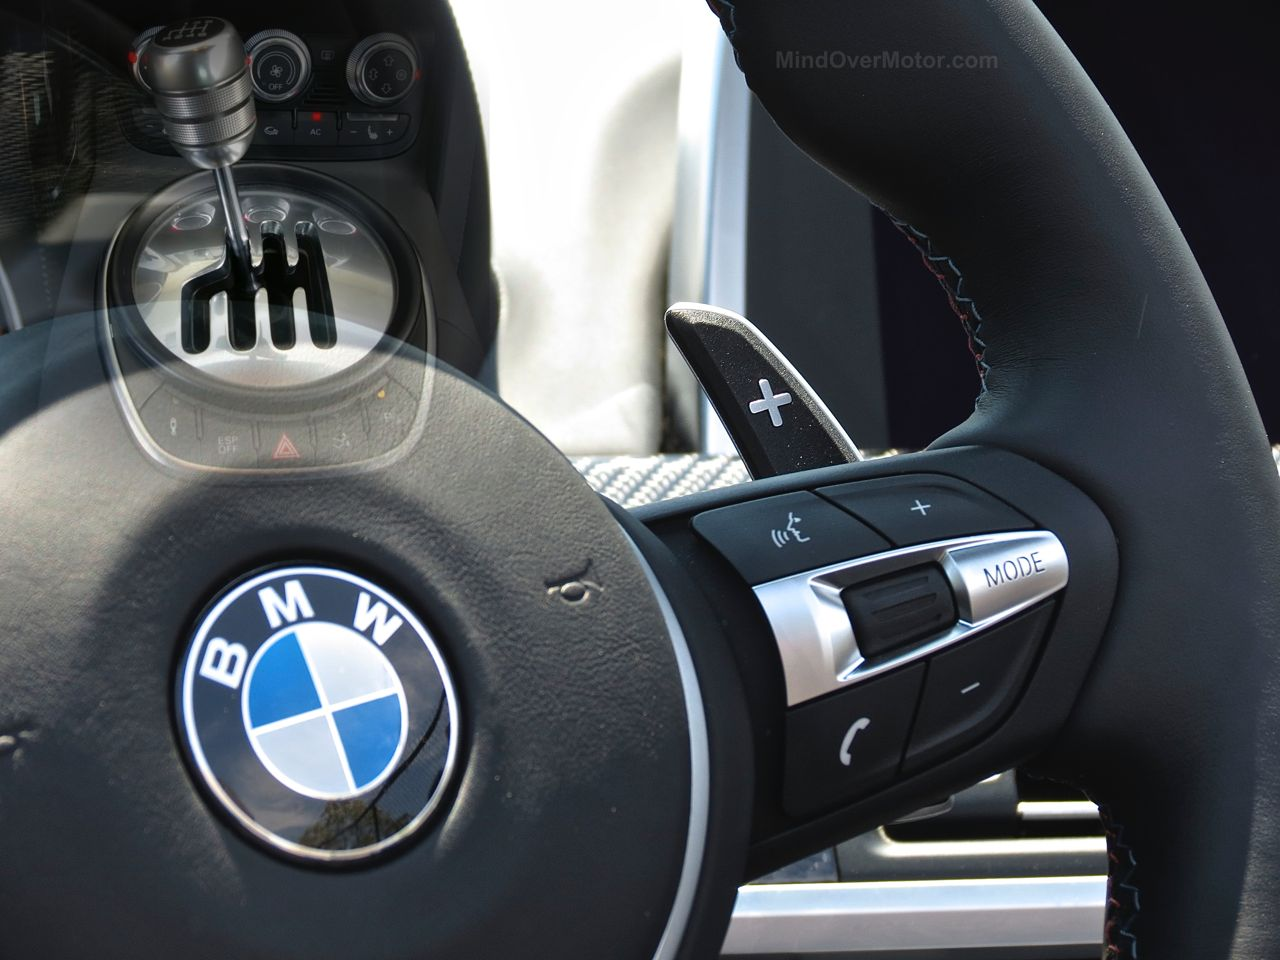 why is paddle shift killing the manual transmission and is it a rh mindovermotor com Old Automatic Manual Old Automatic Manual